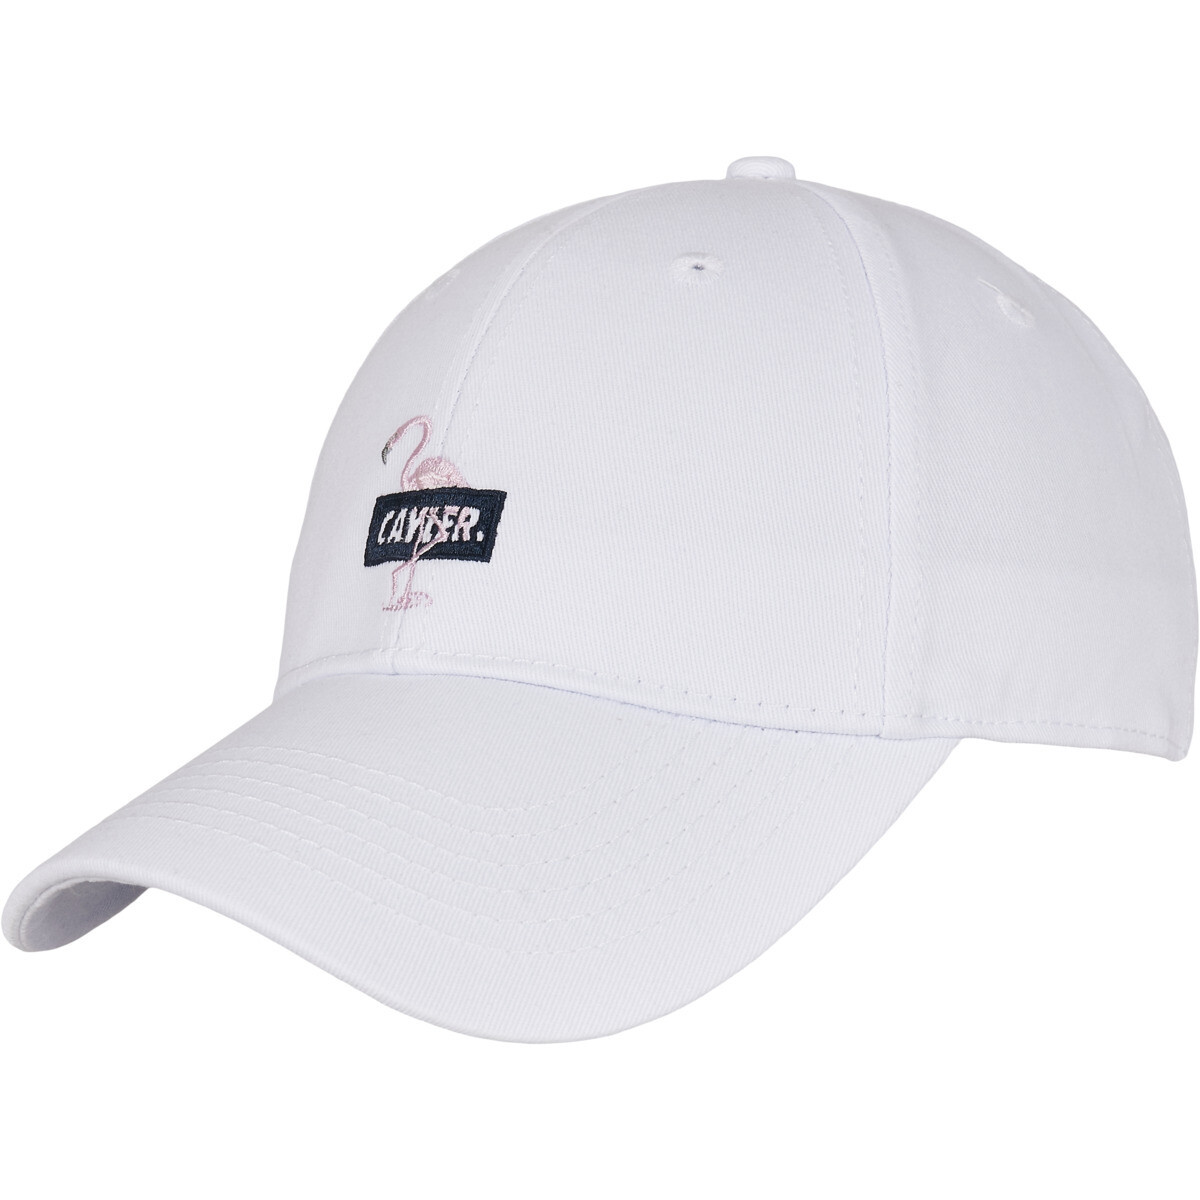 C&S WL Camingo Curved Cap